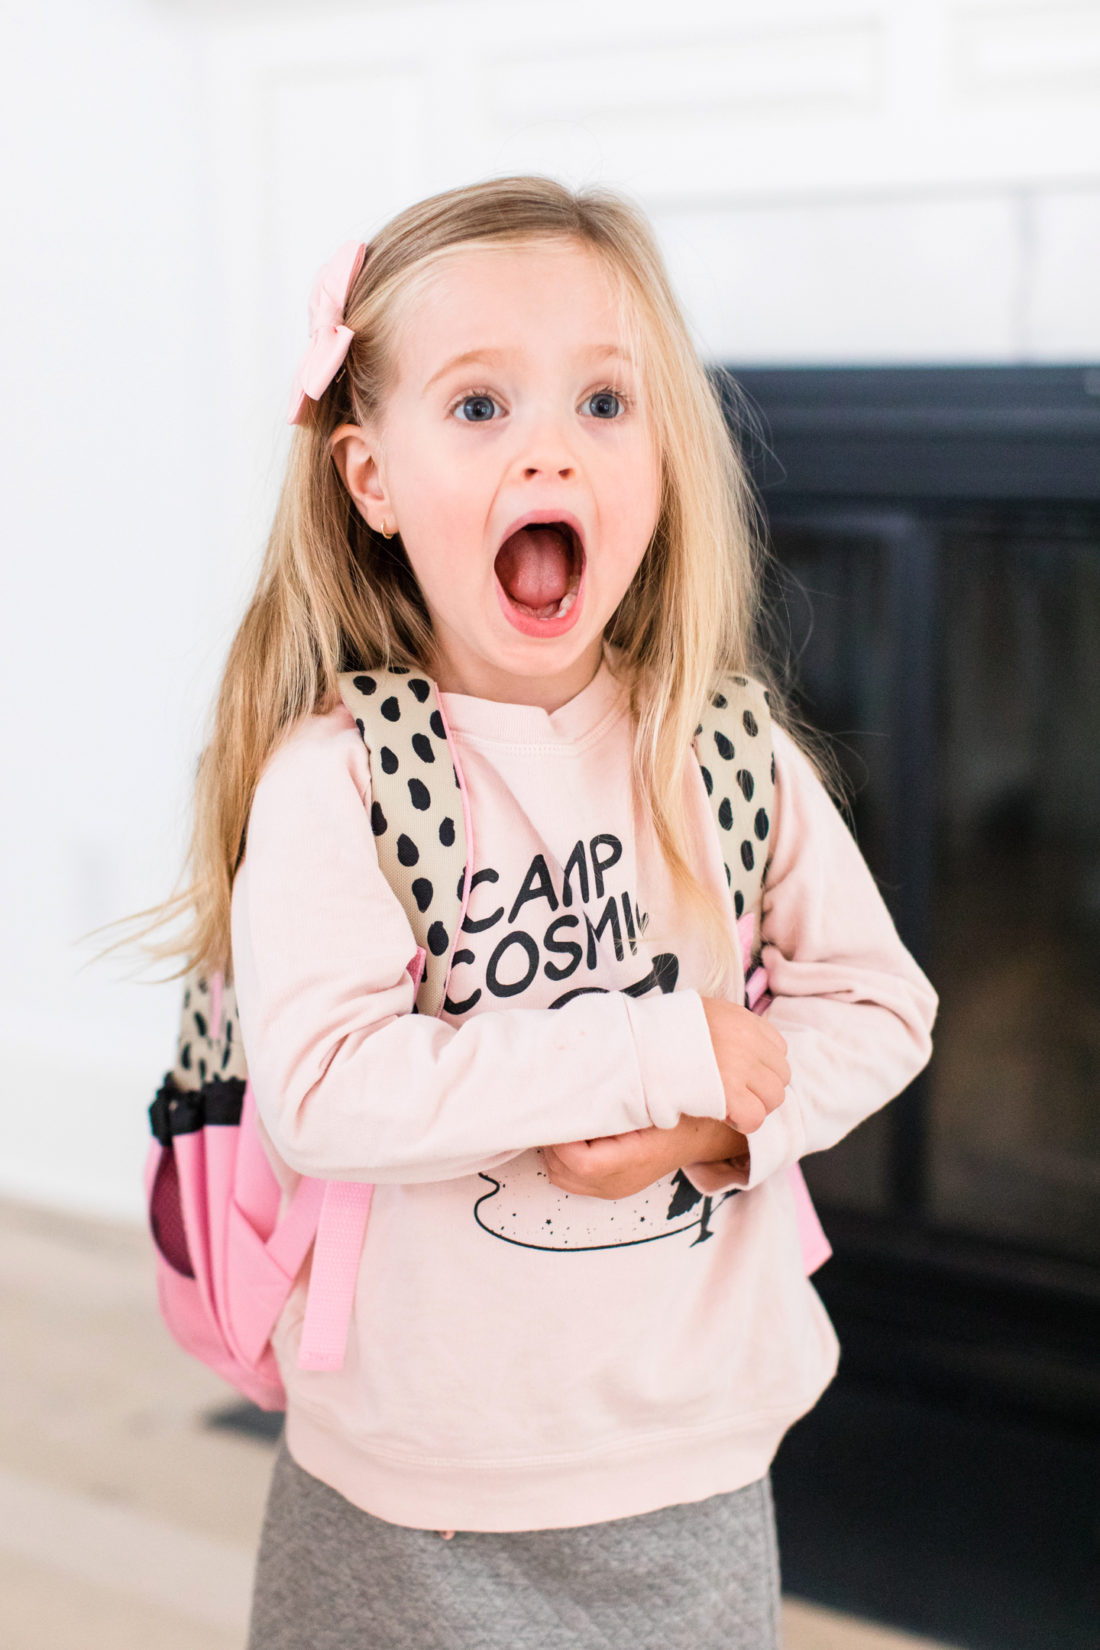 Marlowe Martino wears a pink sweatshirt and looks surprised as she gets ready to head off to her first day of preschool